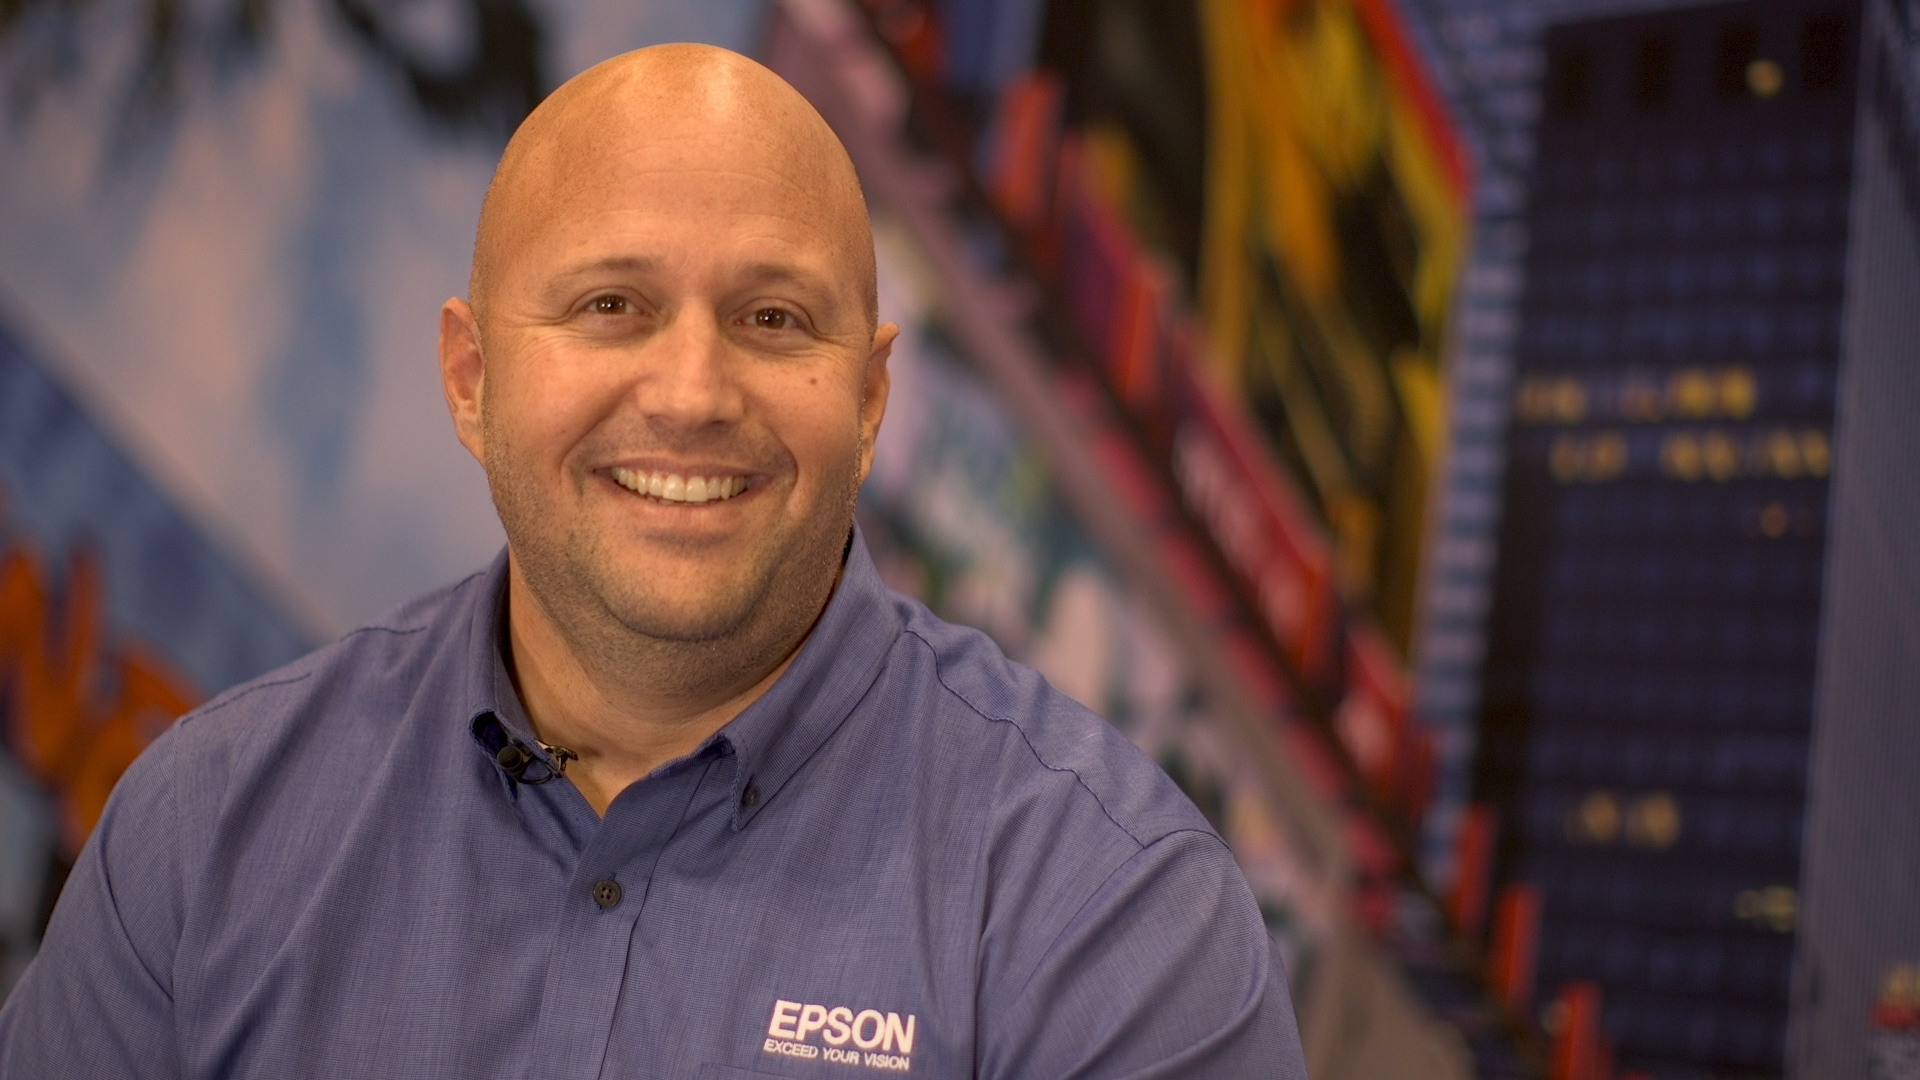 Epson's 20 Years of Wide-Format Printing